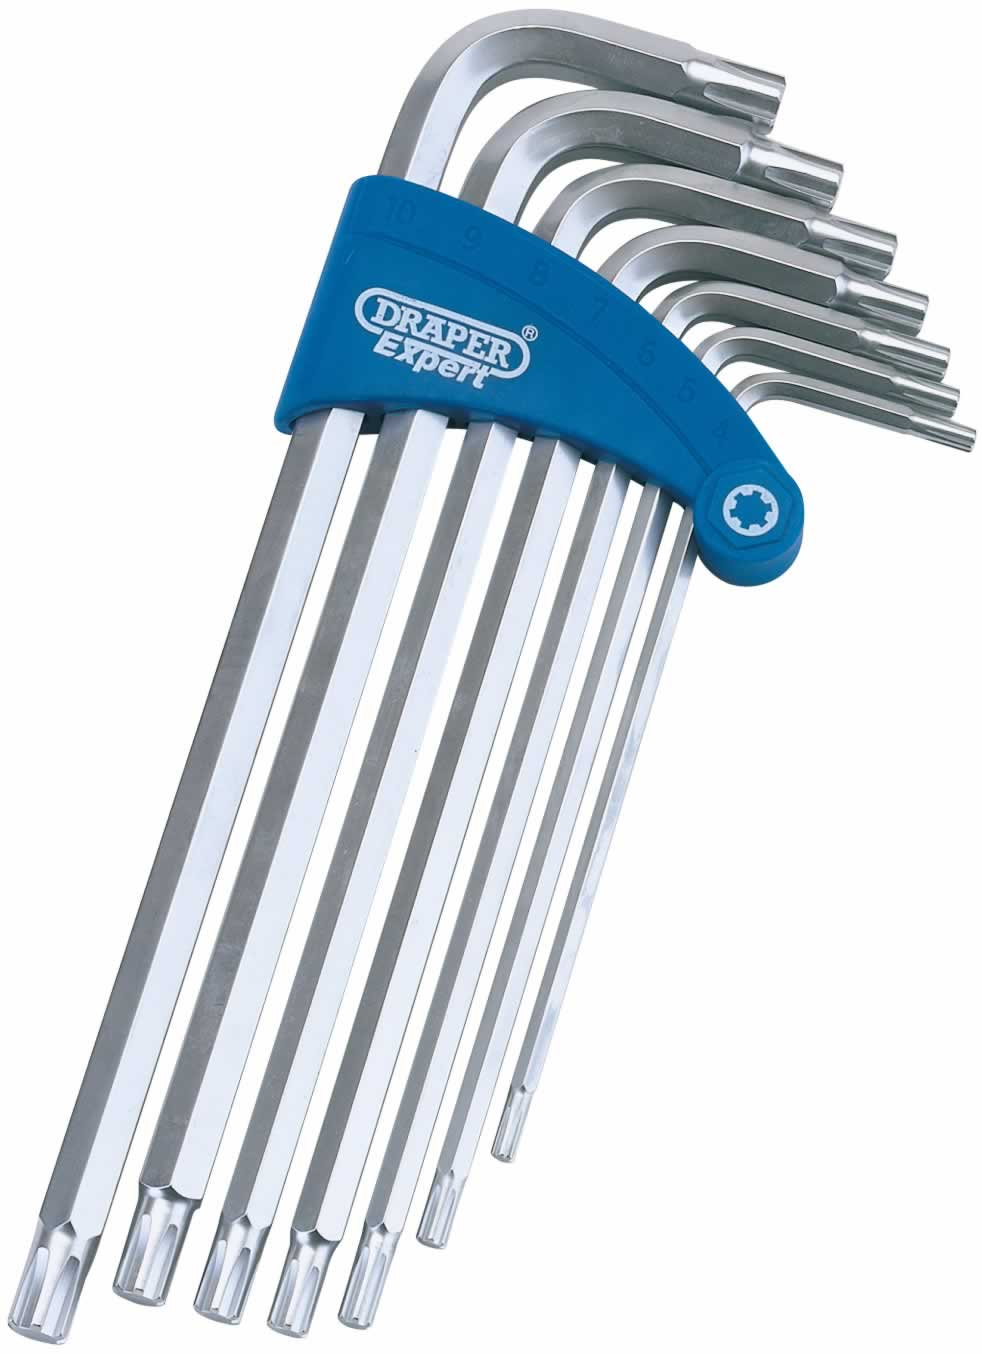 EXPERT 7 PIECE RIBE™ HEX KEY SET IN PLASTIC HOLDER